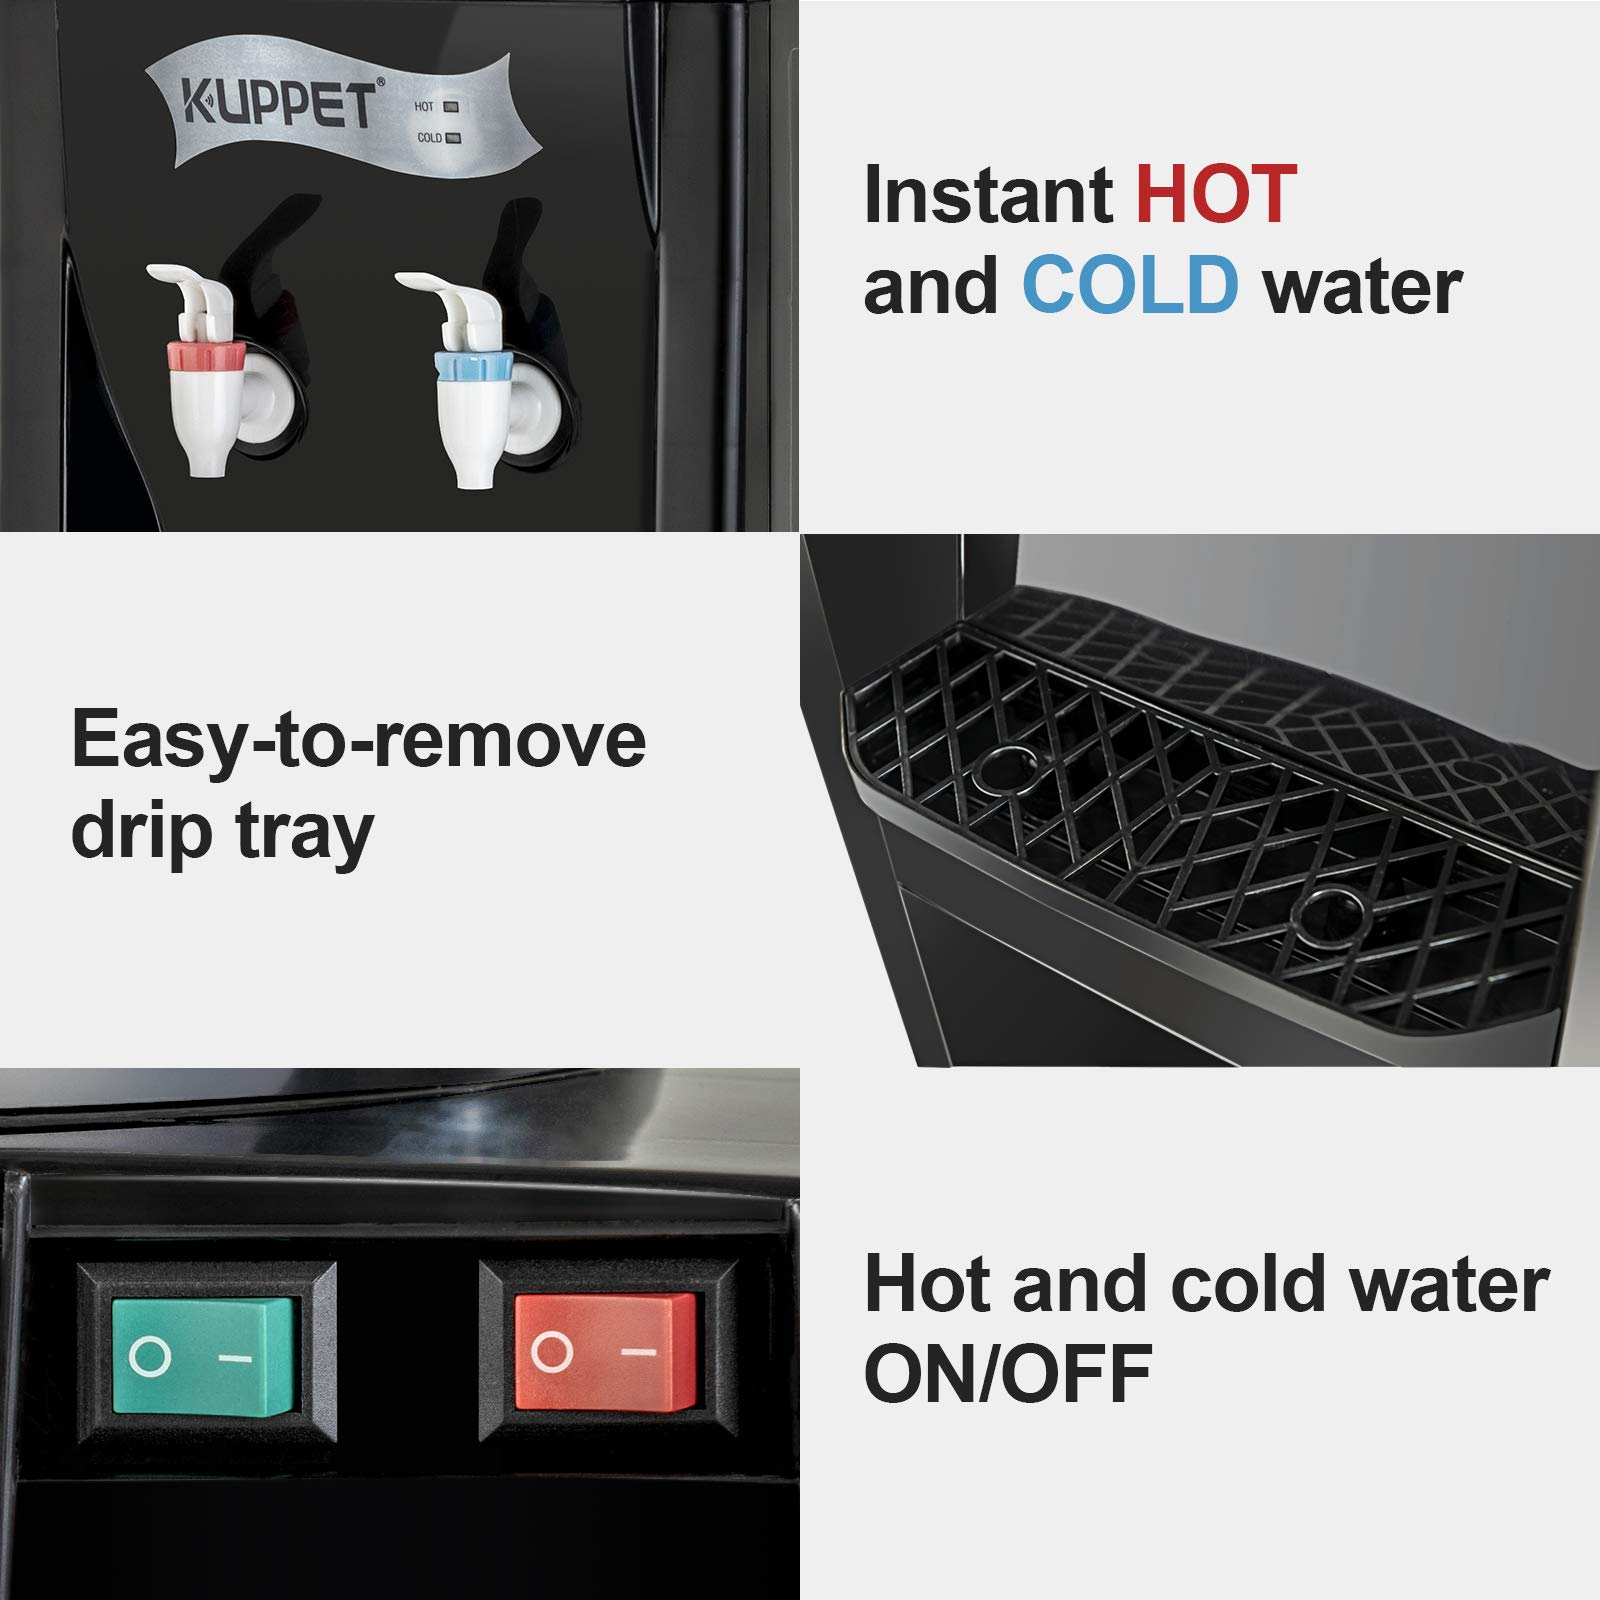 KUPPET Water Cooler Dispenser-Top Loading Freestanding Water Dispenser with Storage Cabinet, 5 Gallon, Two Temperature Settings-Hot(185℉-203℉), Normal Temperature(50℉-59℉), BLACK(32'', Black) by KUPPET (Image #4)